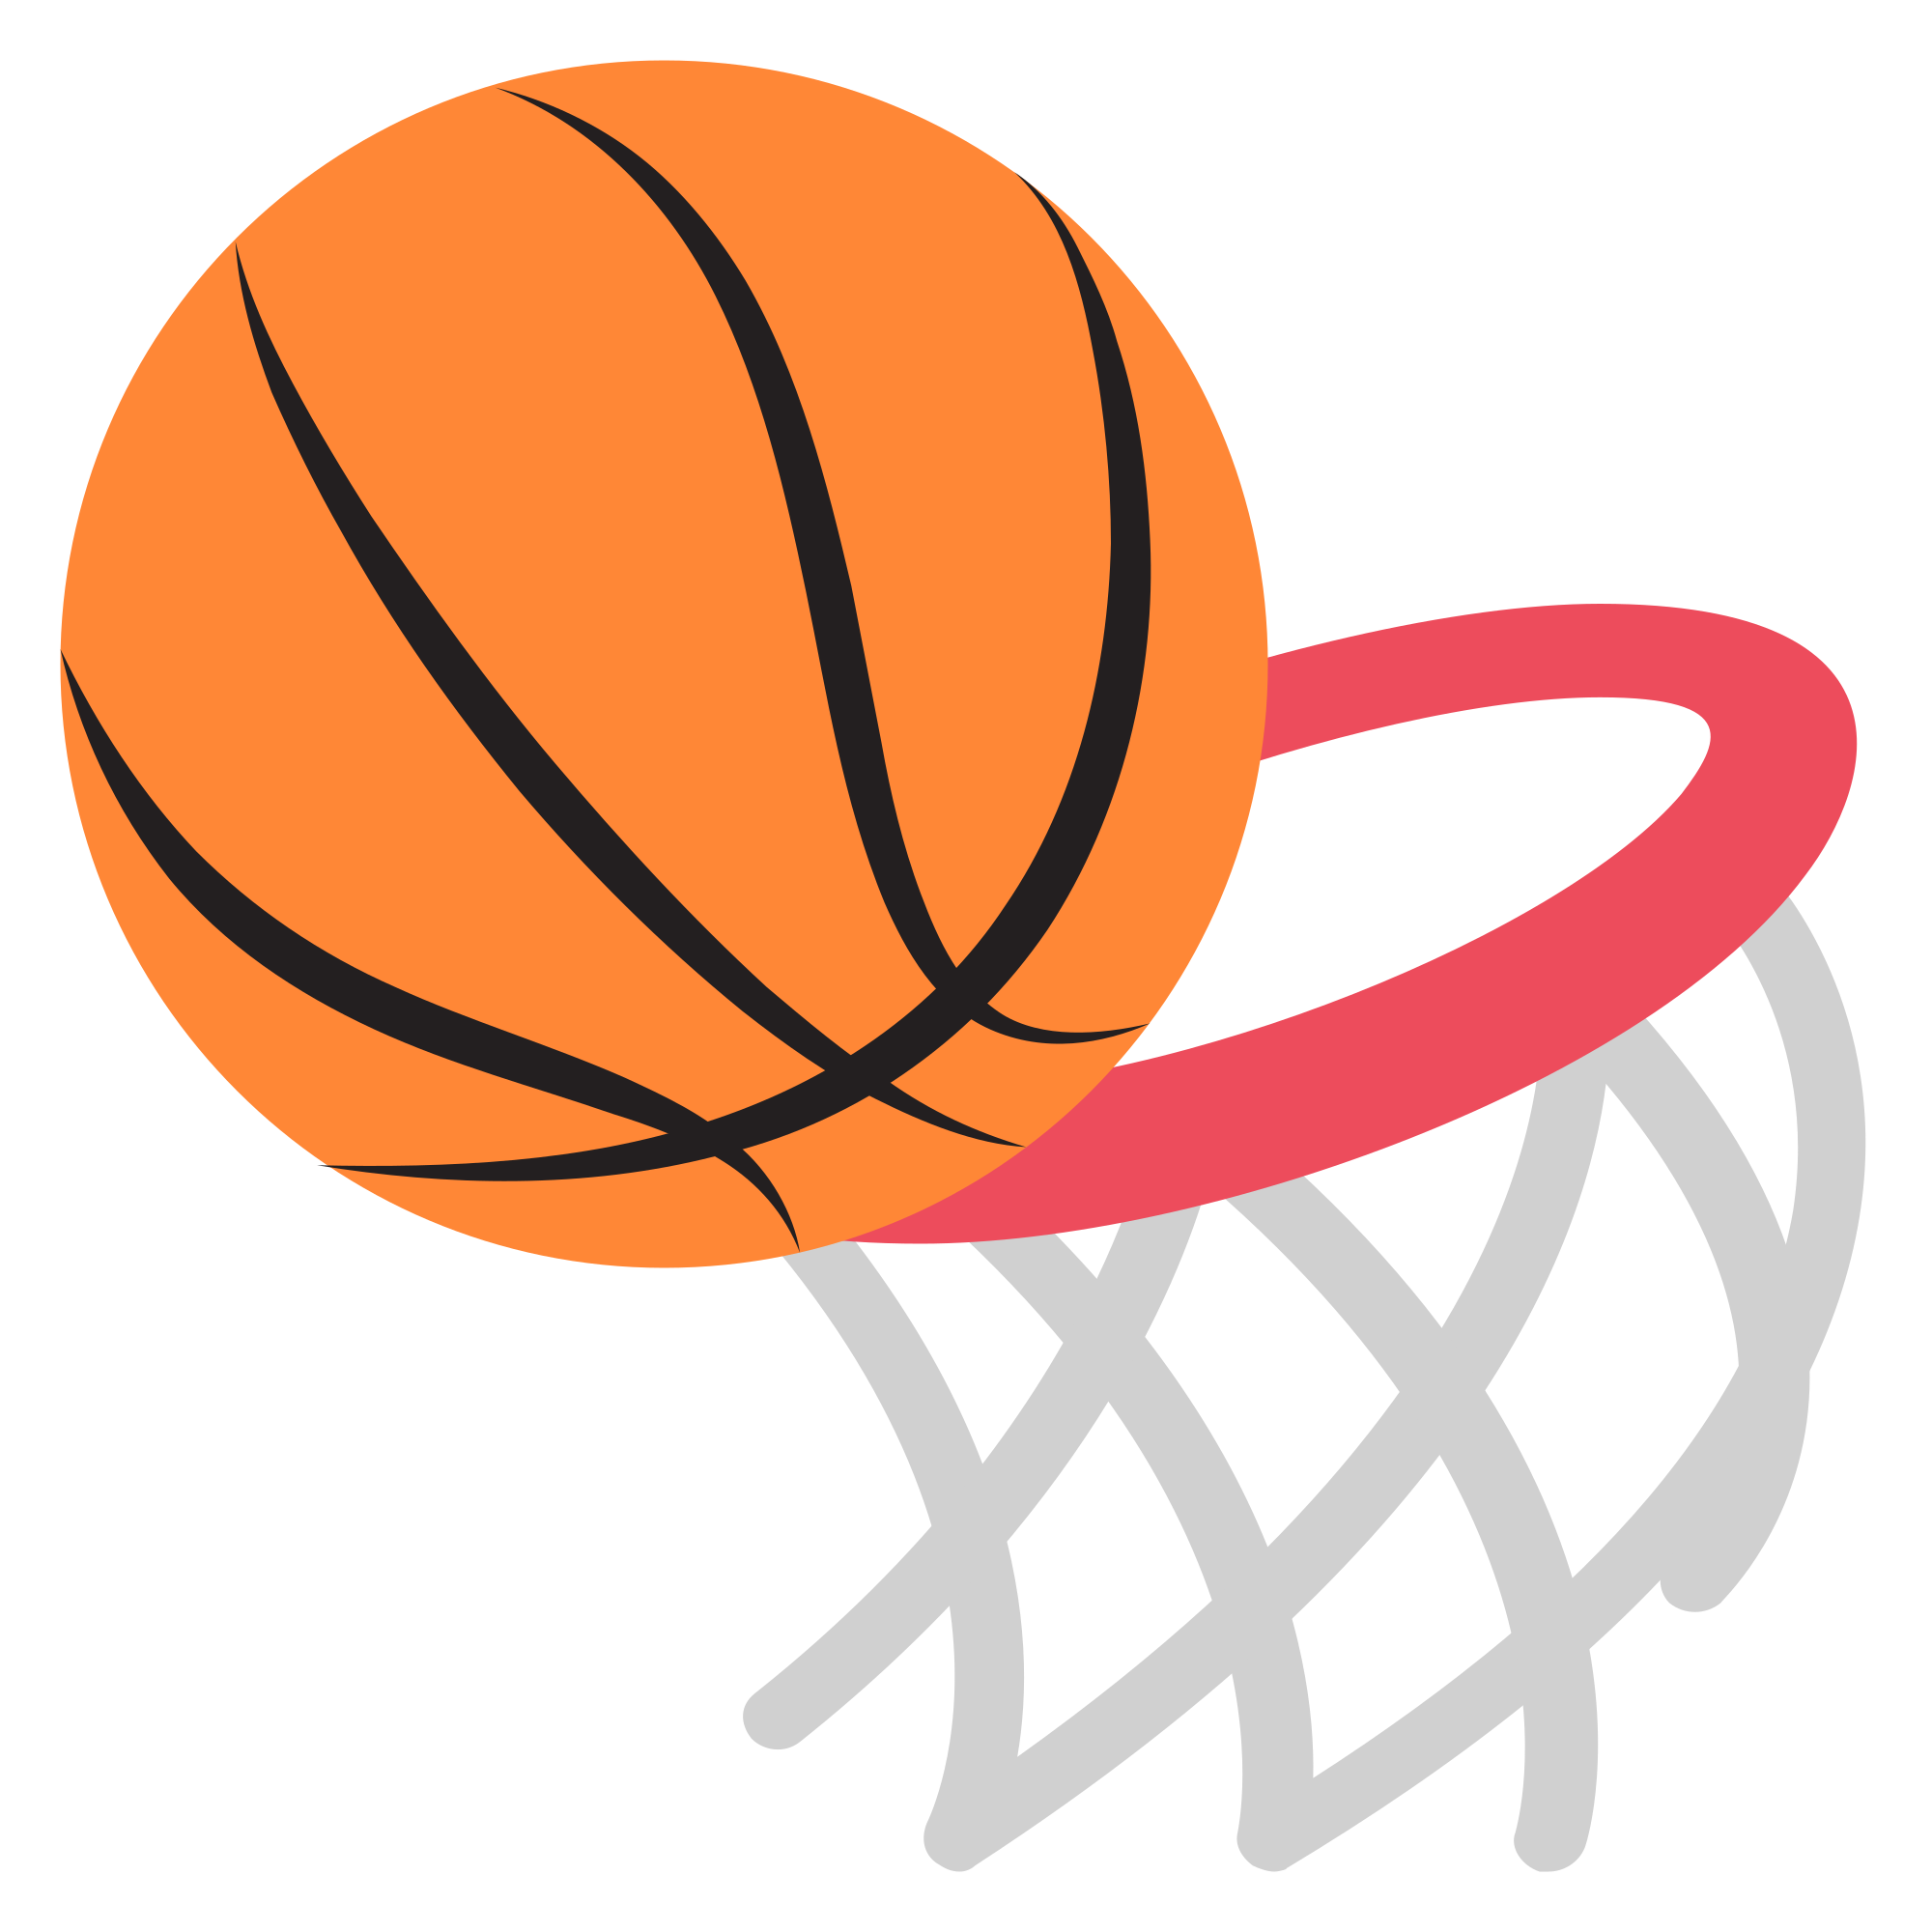 Graphic basketball clipart clip black and white Basketball And Hoop Clipart#4279479 - Shop of Clipart Library clip black and white